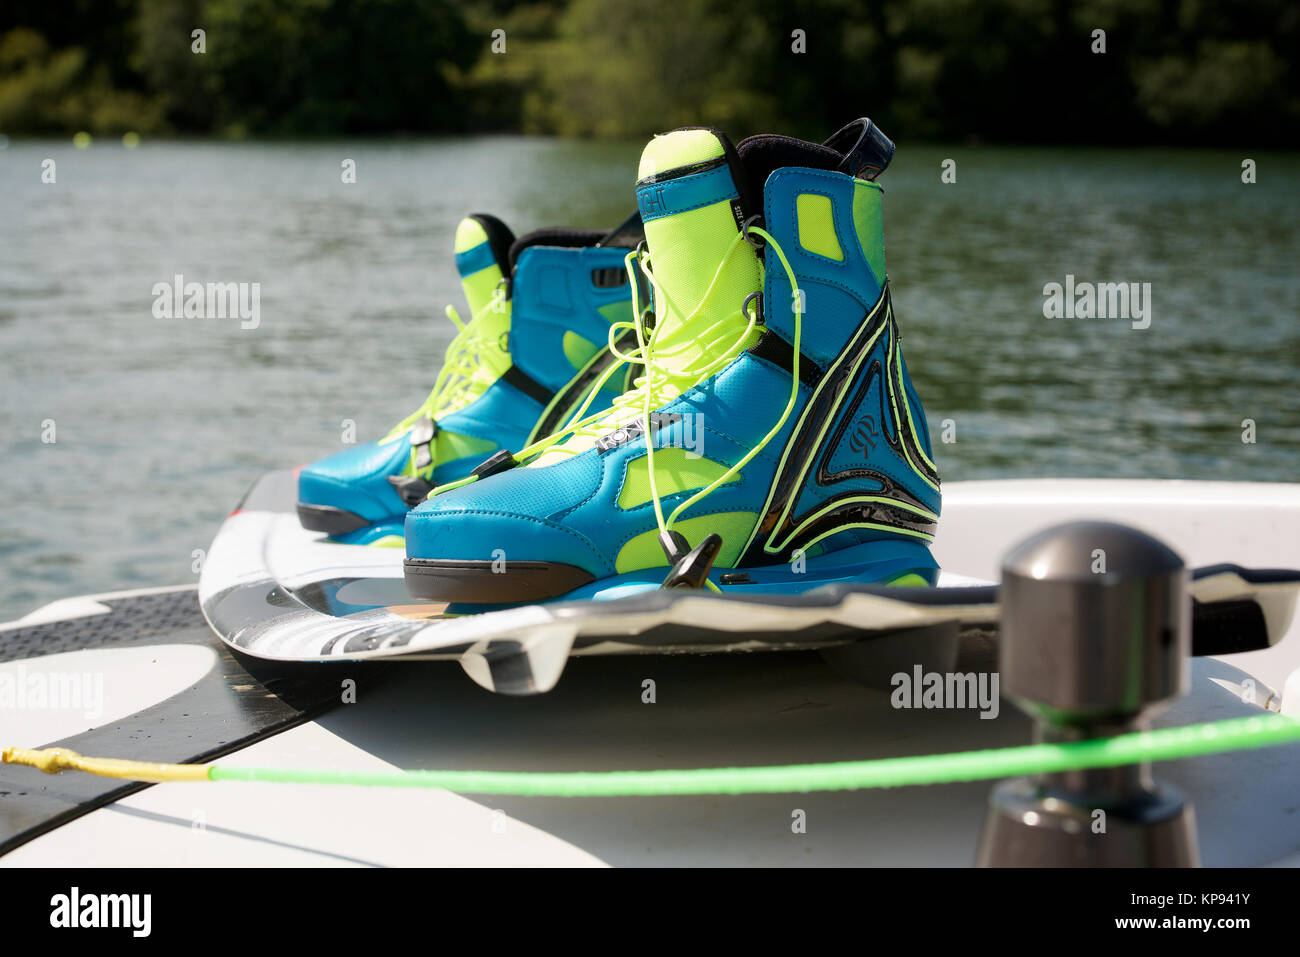 Wakeboard and boots - Stock Image